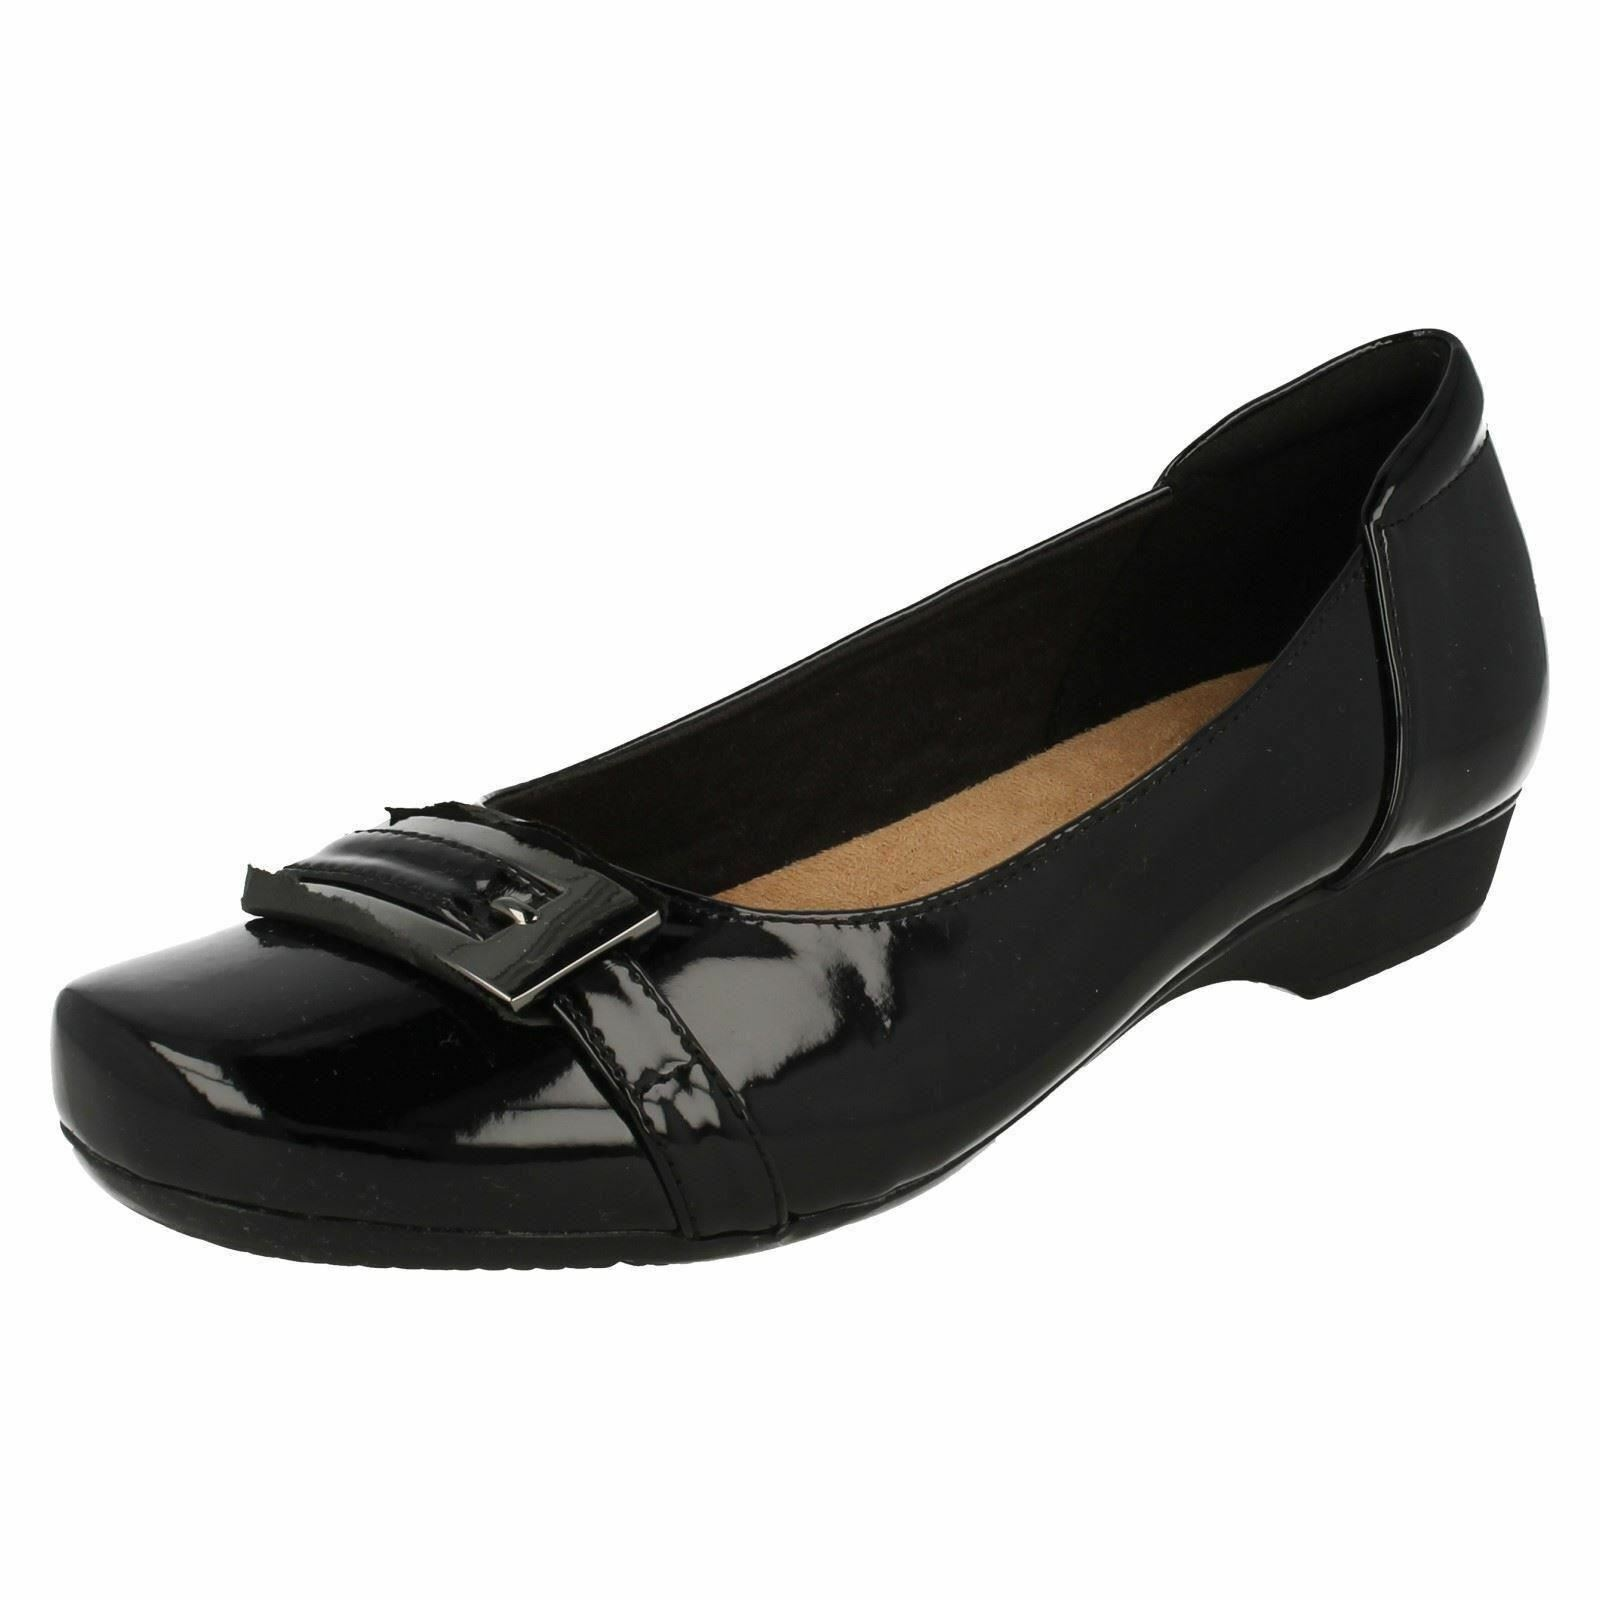 Ladies Blanche West Black Patent Synthetic Shoes by Clarks retail £39.99